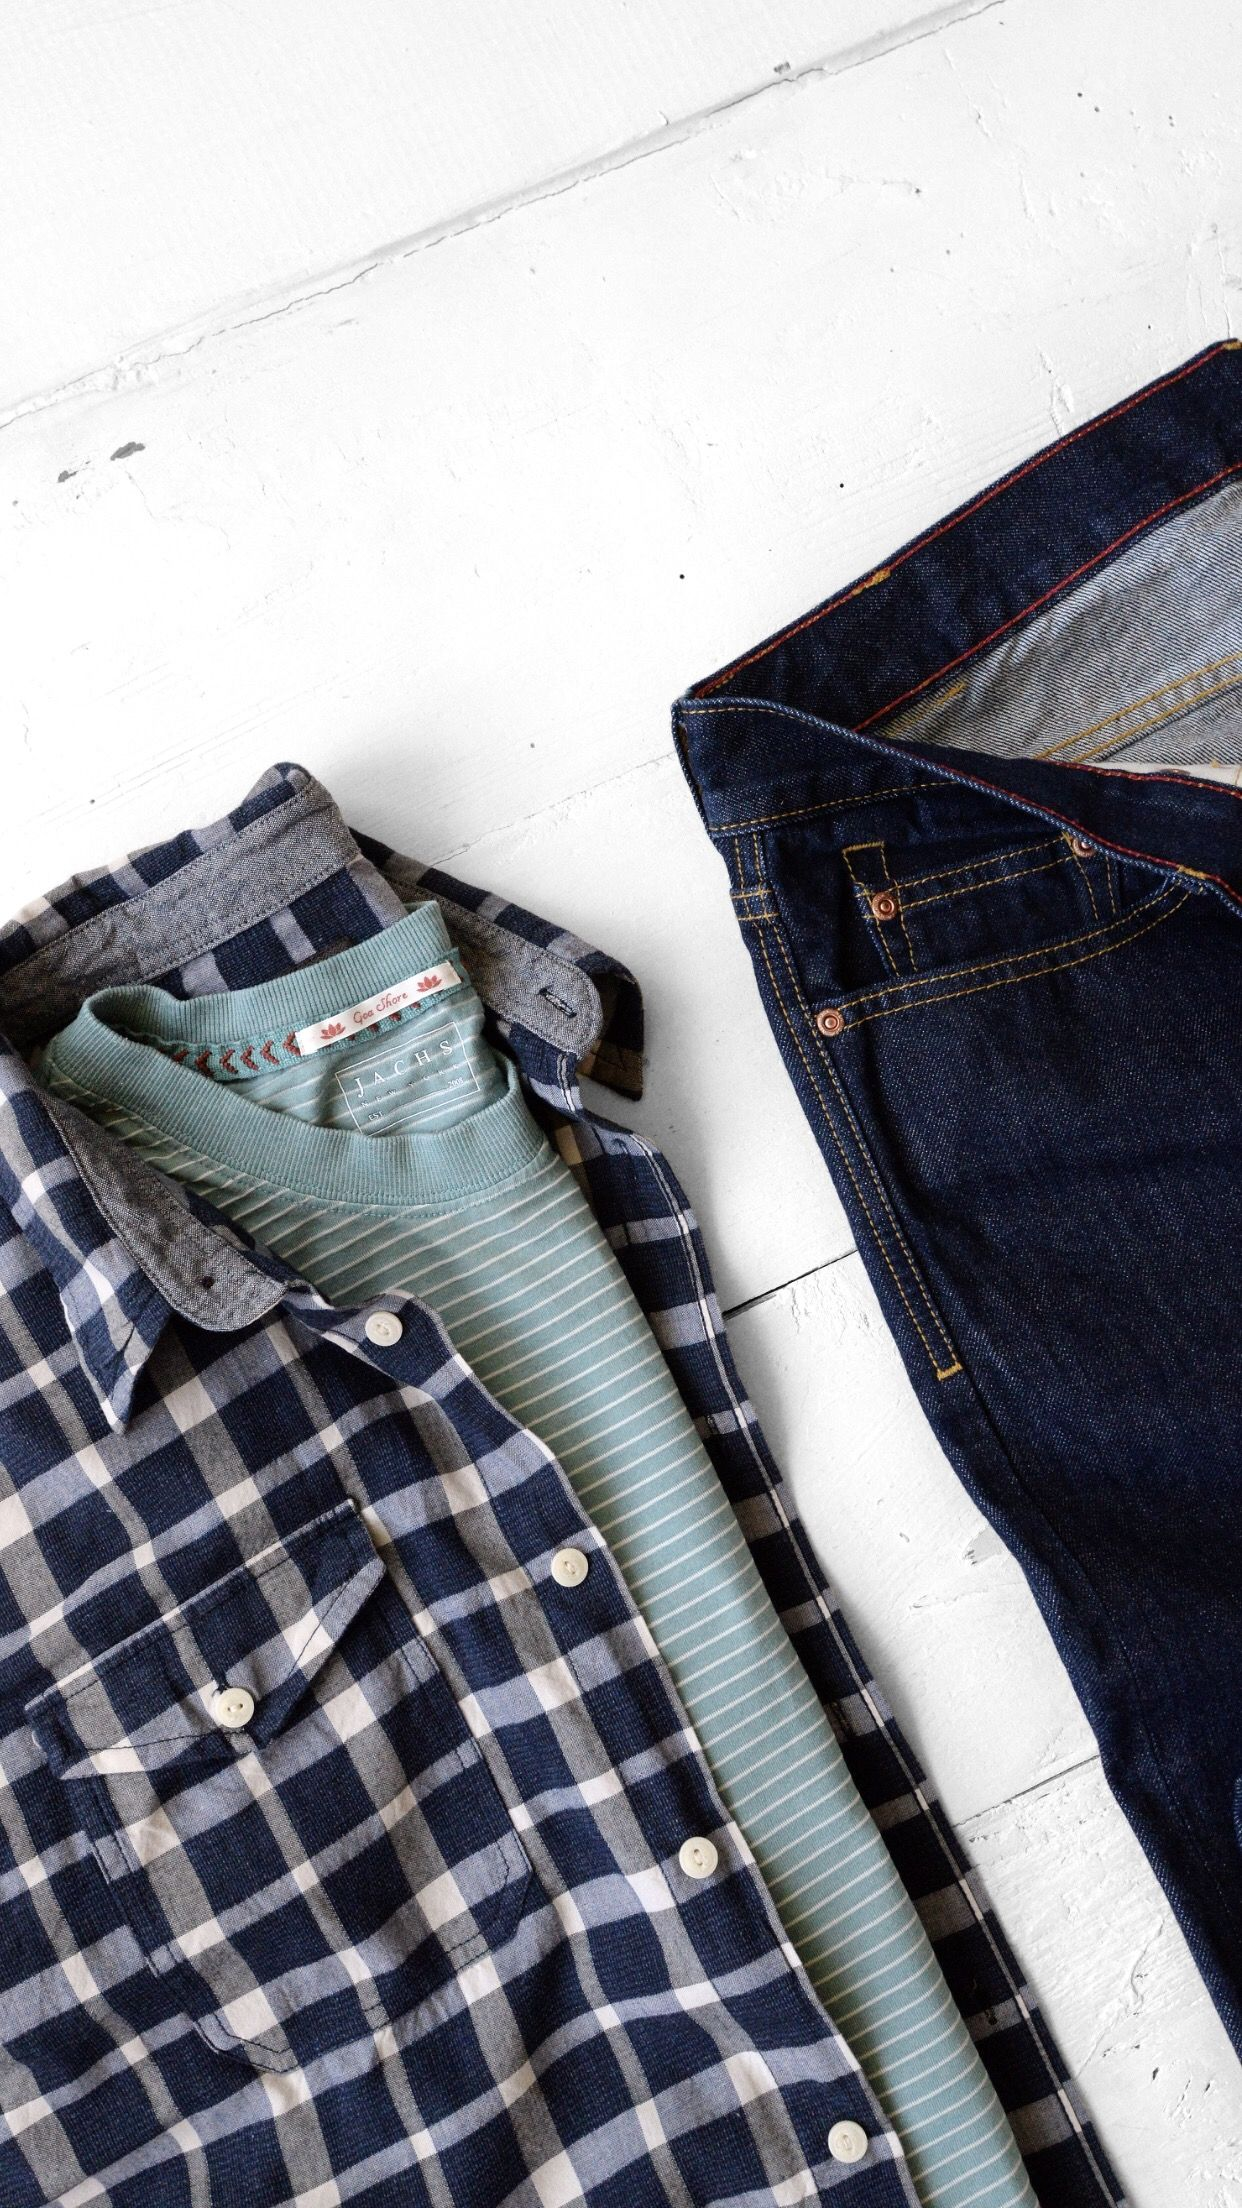 Blue flannel outfits for guys  Tuesday    Menus outfit  Pinterest  Guy fashion and